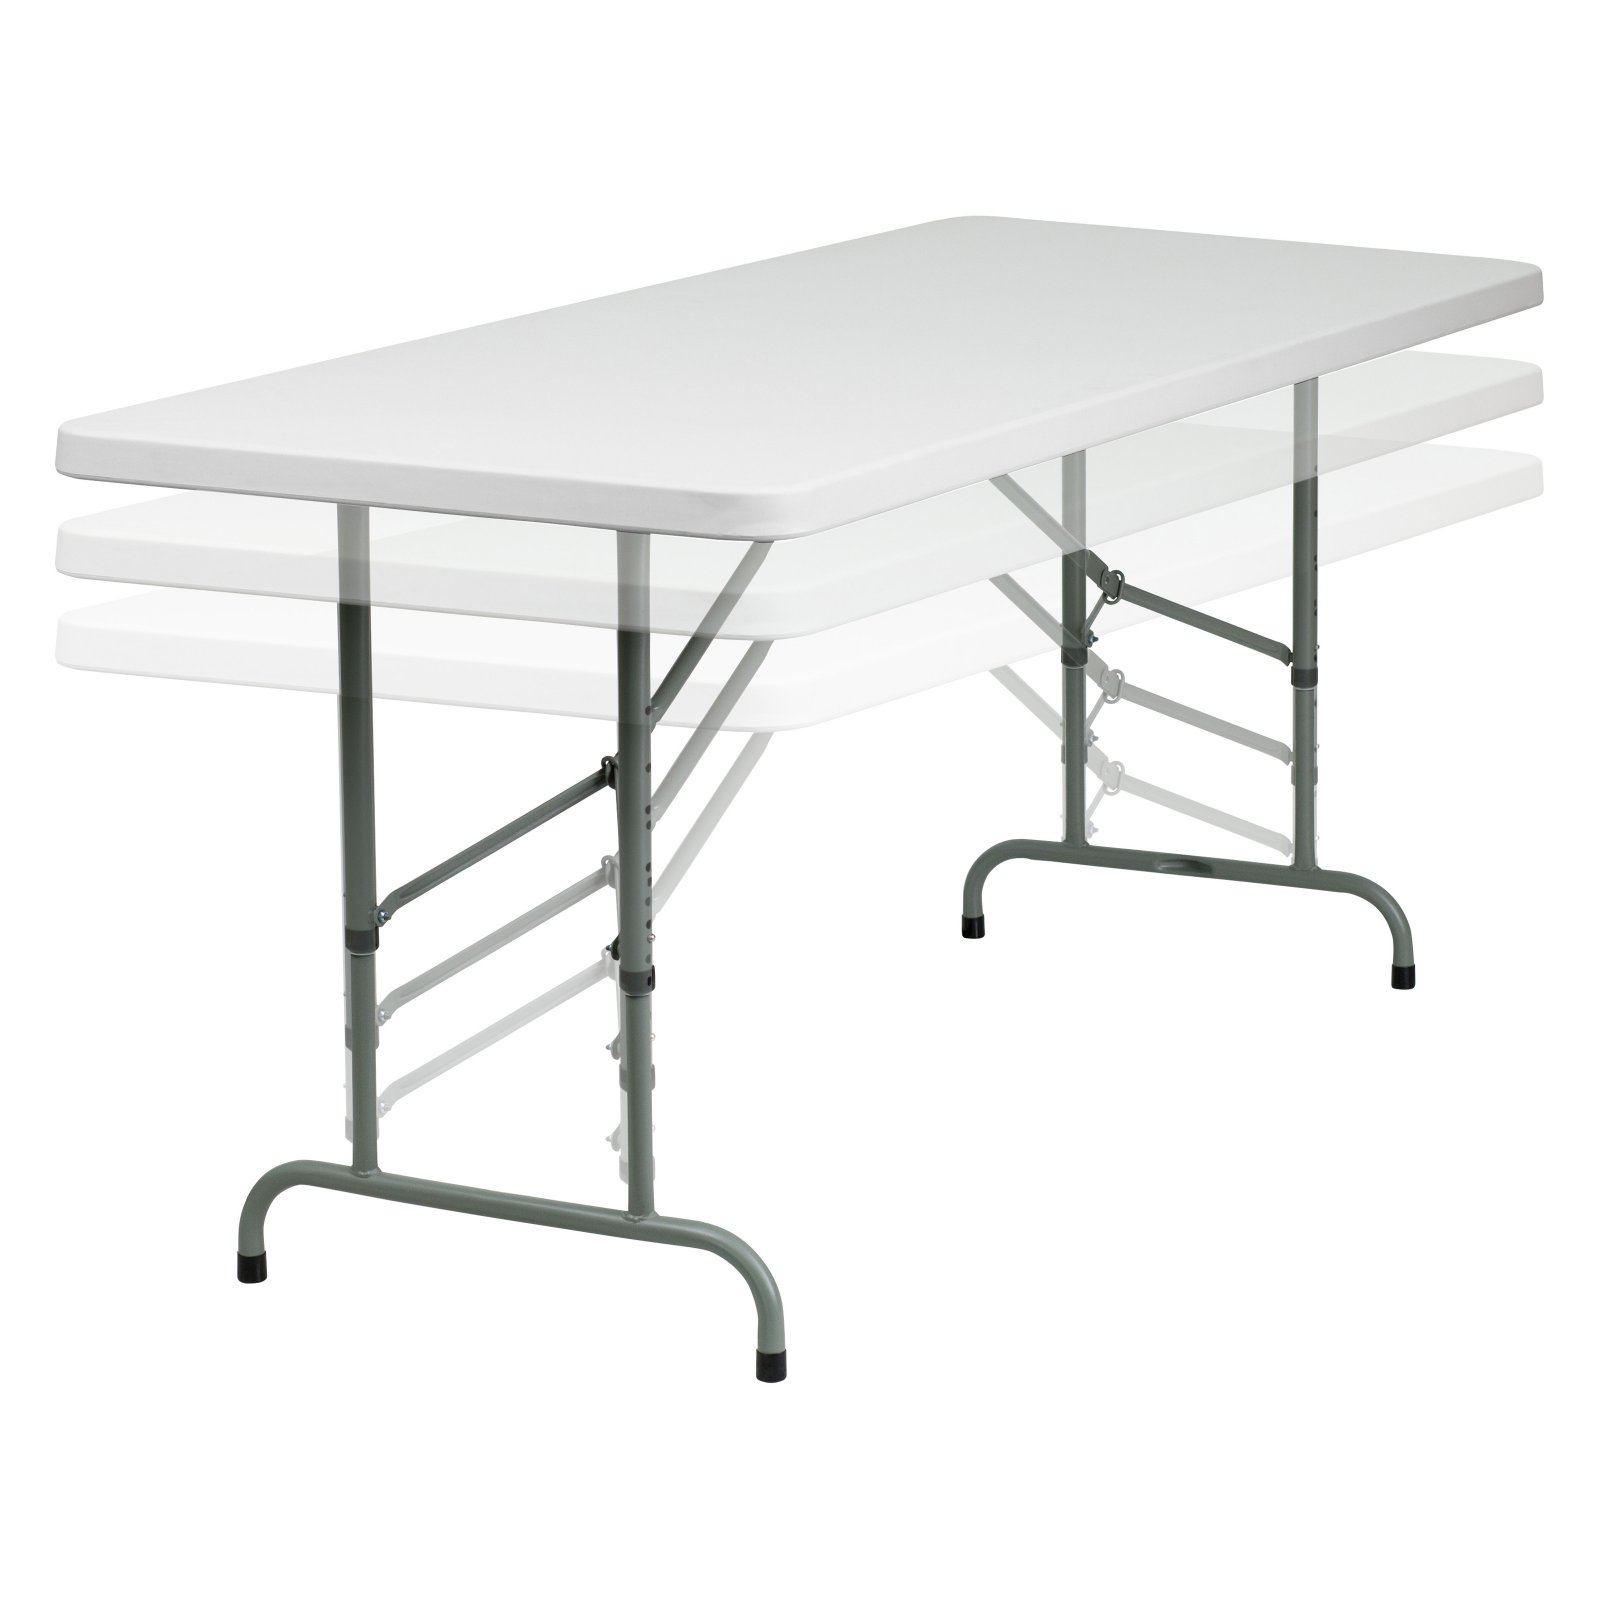 Charmant Flash Furniture 30u0027u0027W X 72u0027u0027L Height Adjustable Granite White Plastic